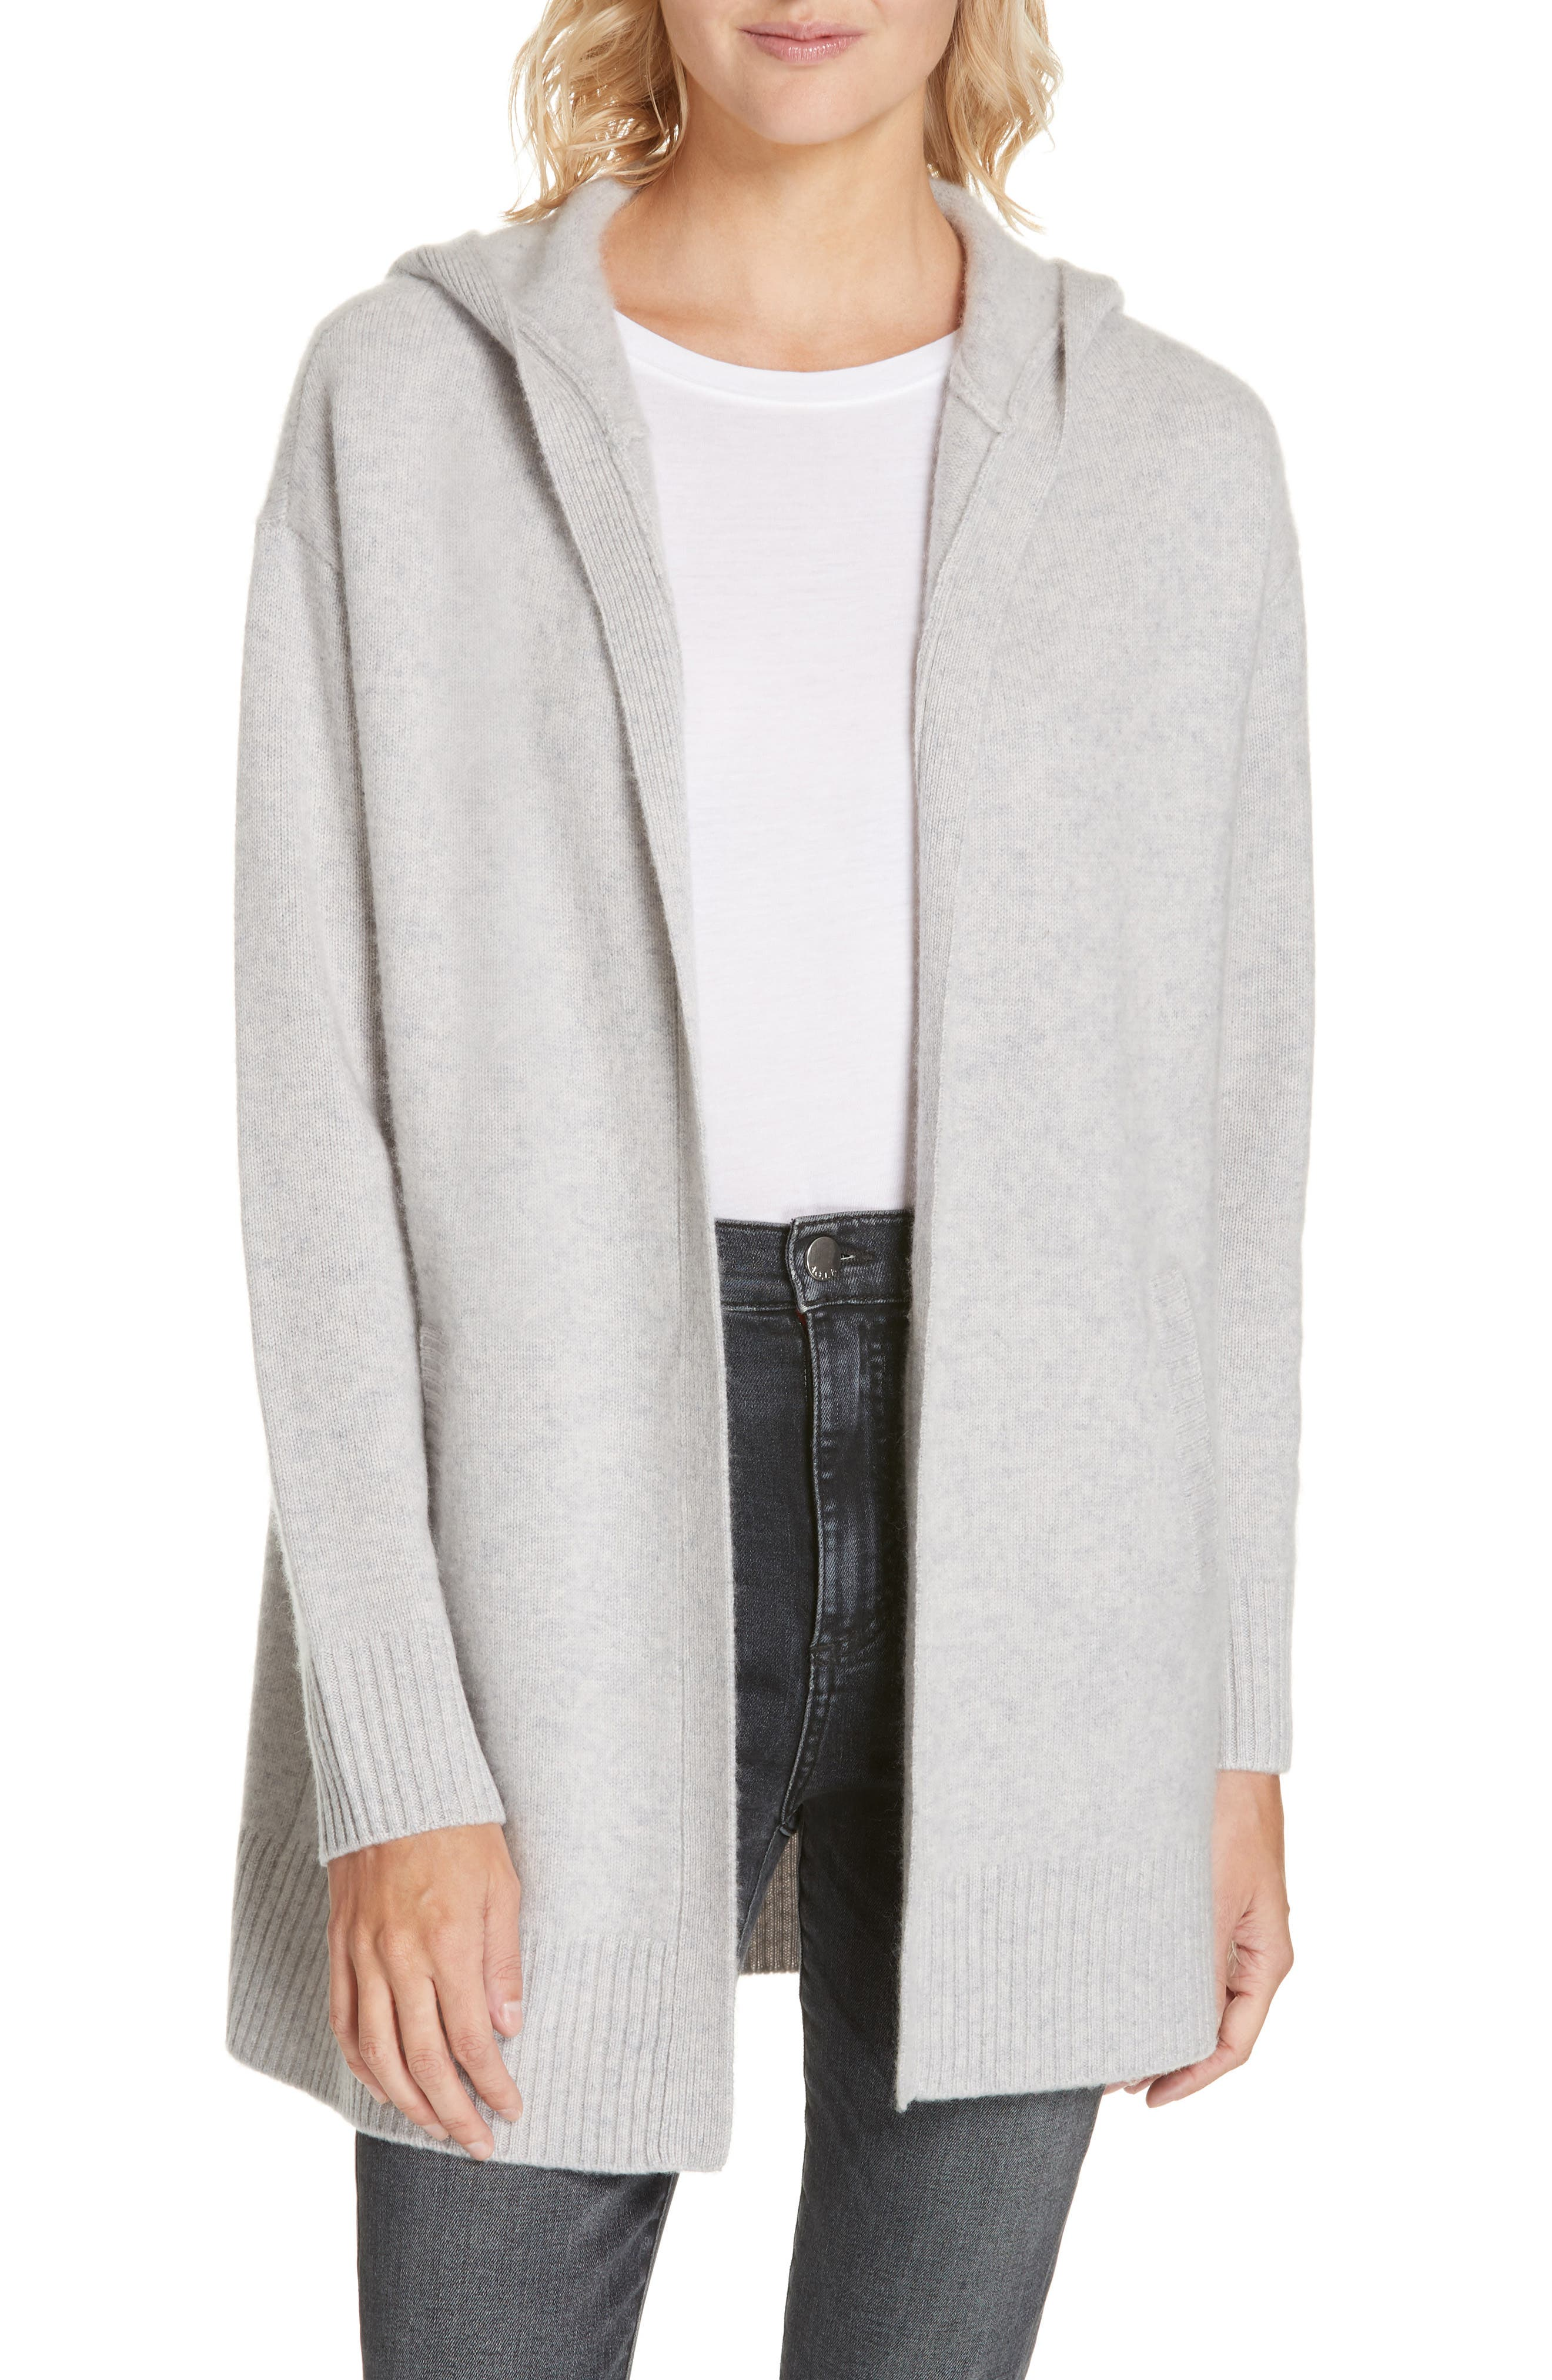 NORDSTROM SIGNATURE,                             Hooded Boiled Cashmere Cardigan,                             Main thumbnail 1, color,                             GREY CLAY HEATHER